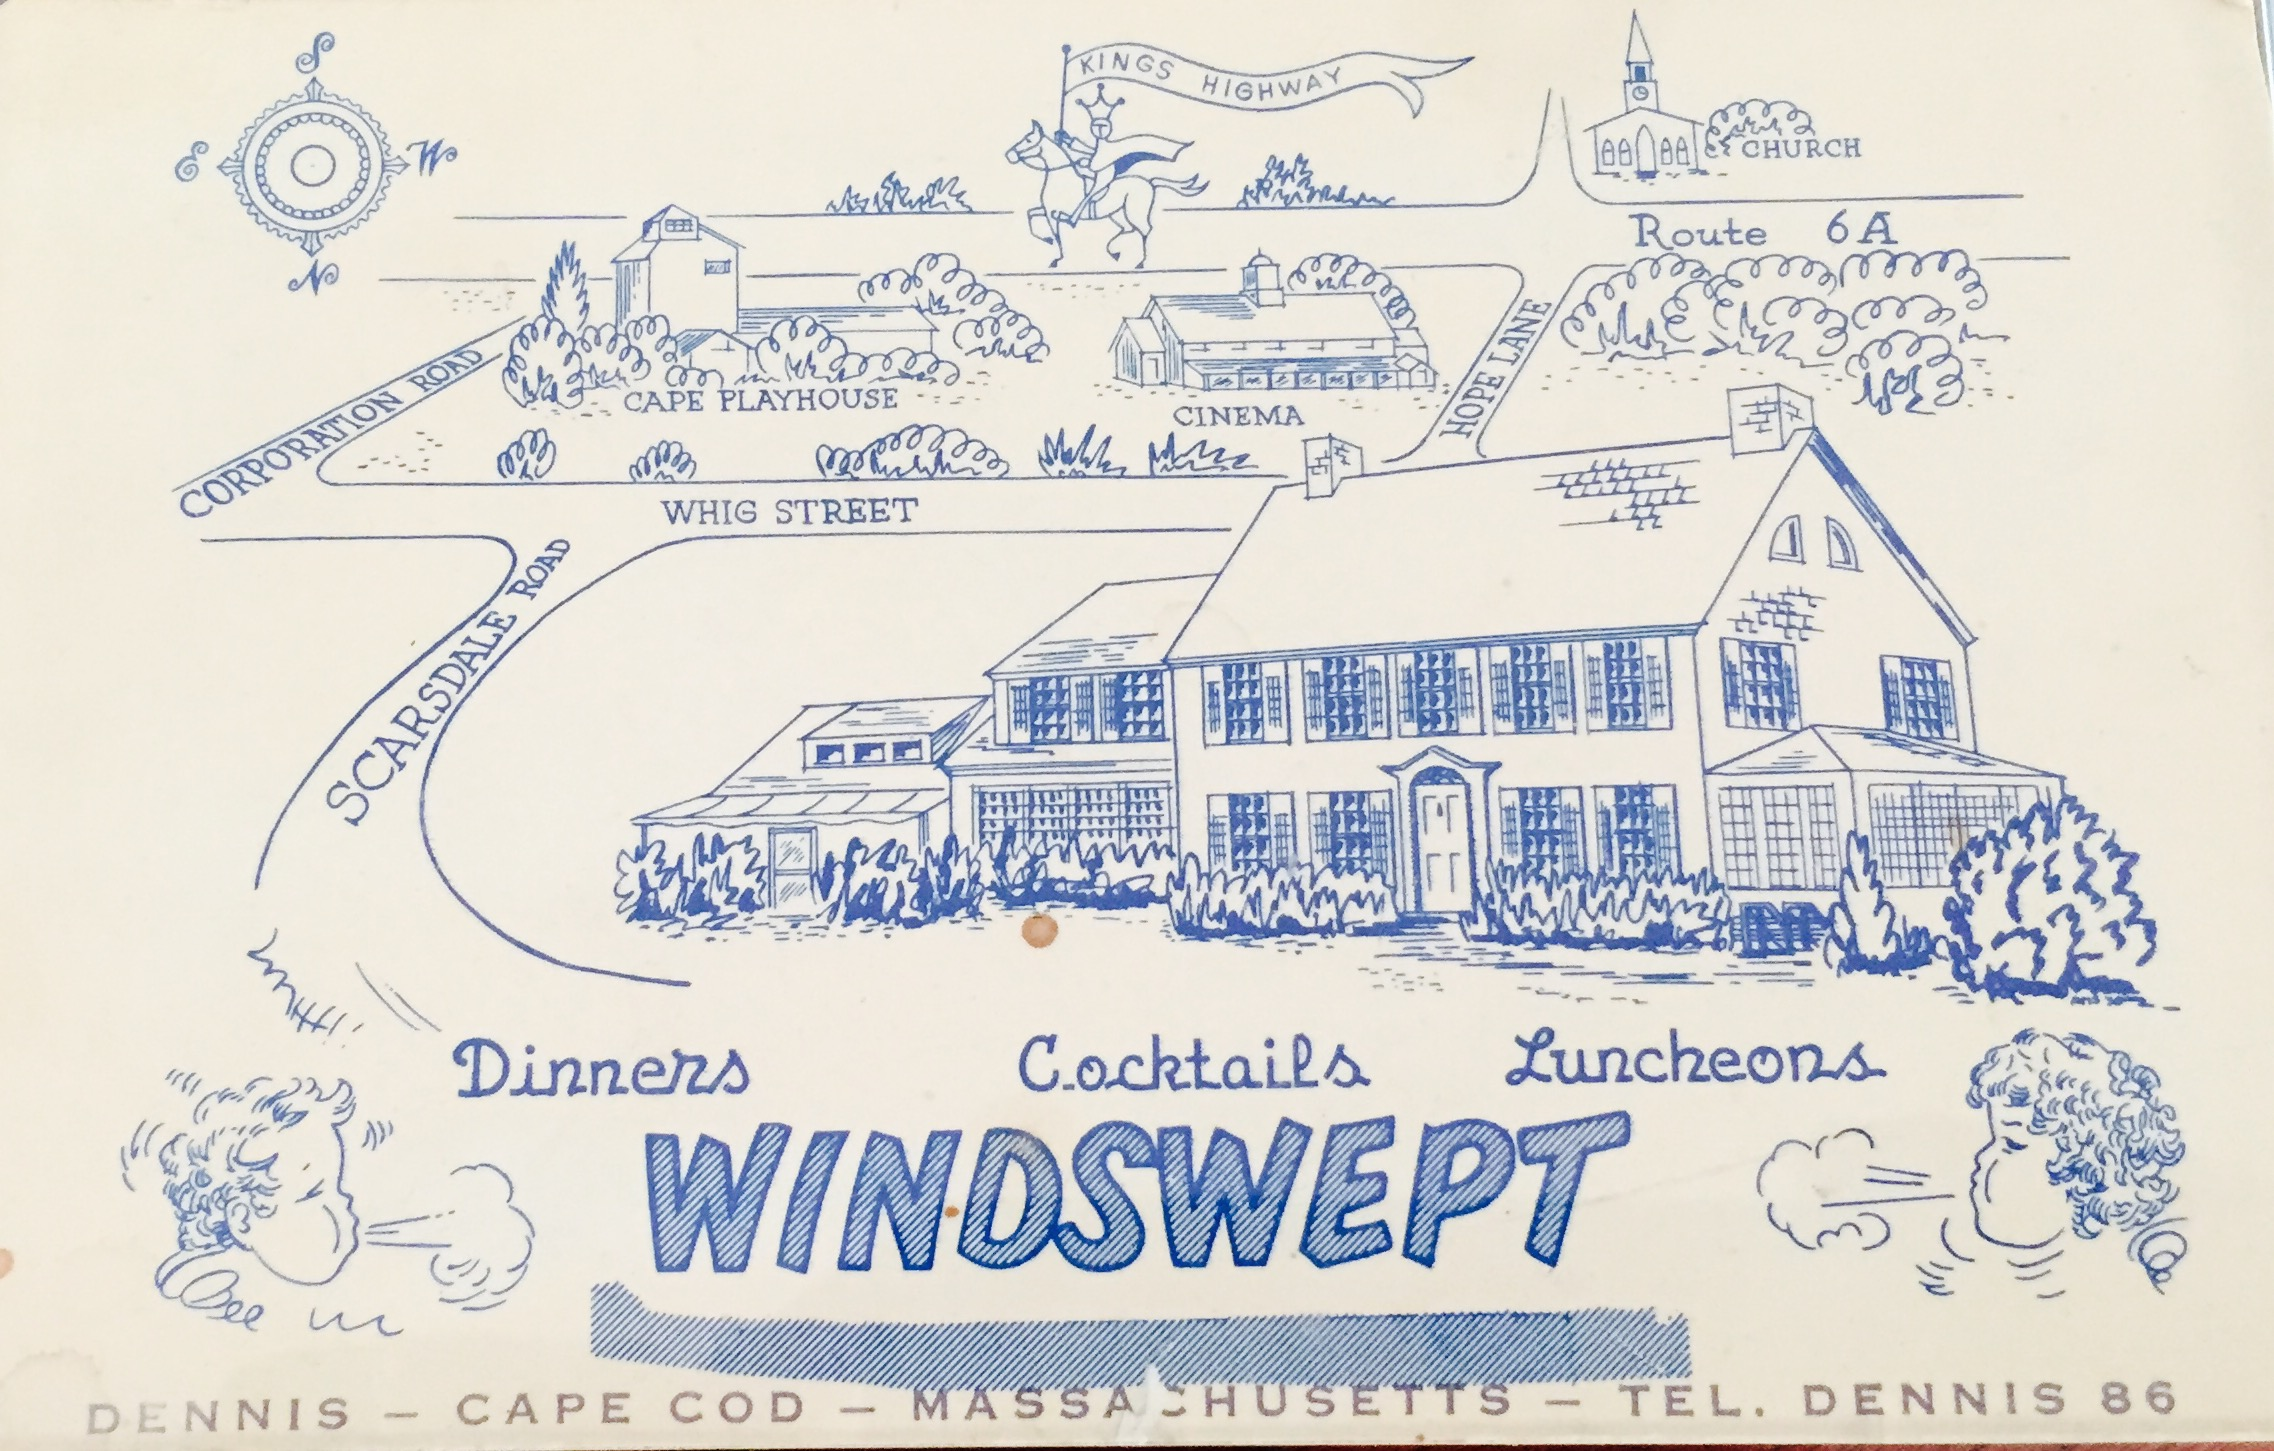 A post card for the Windswept Restaurant in the 1950s